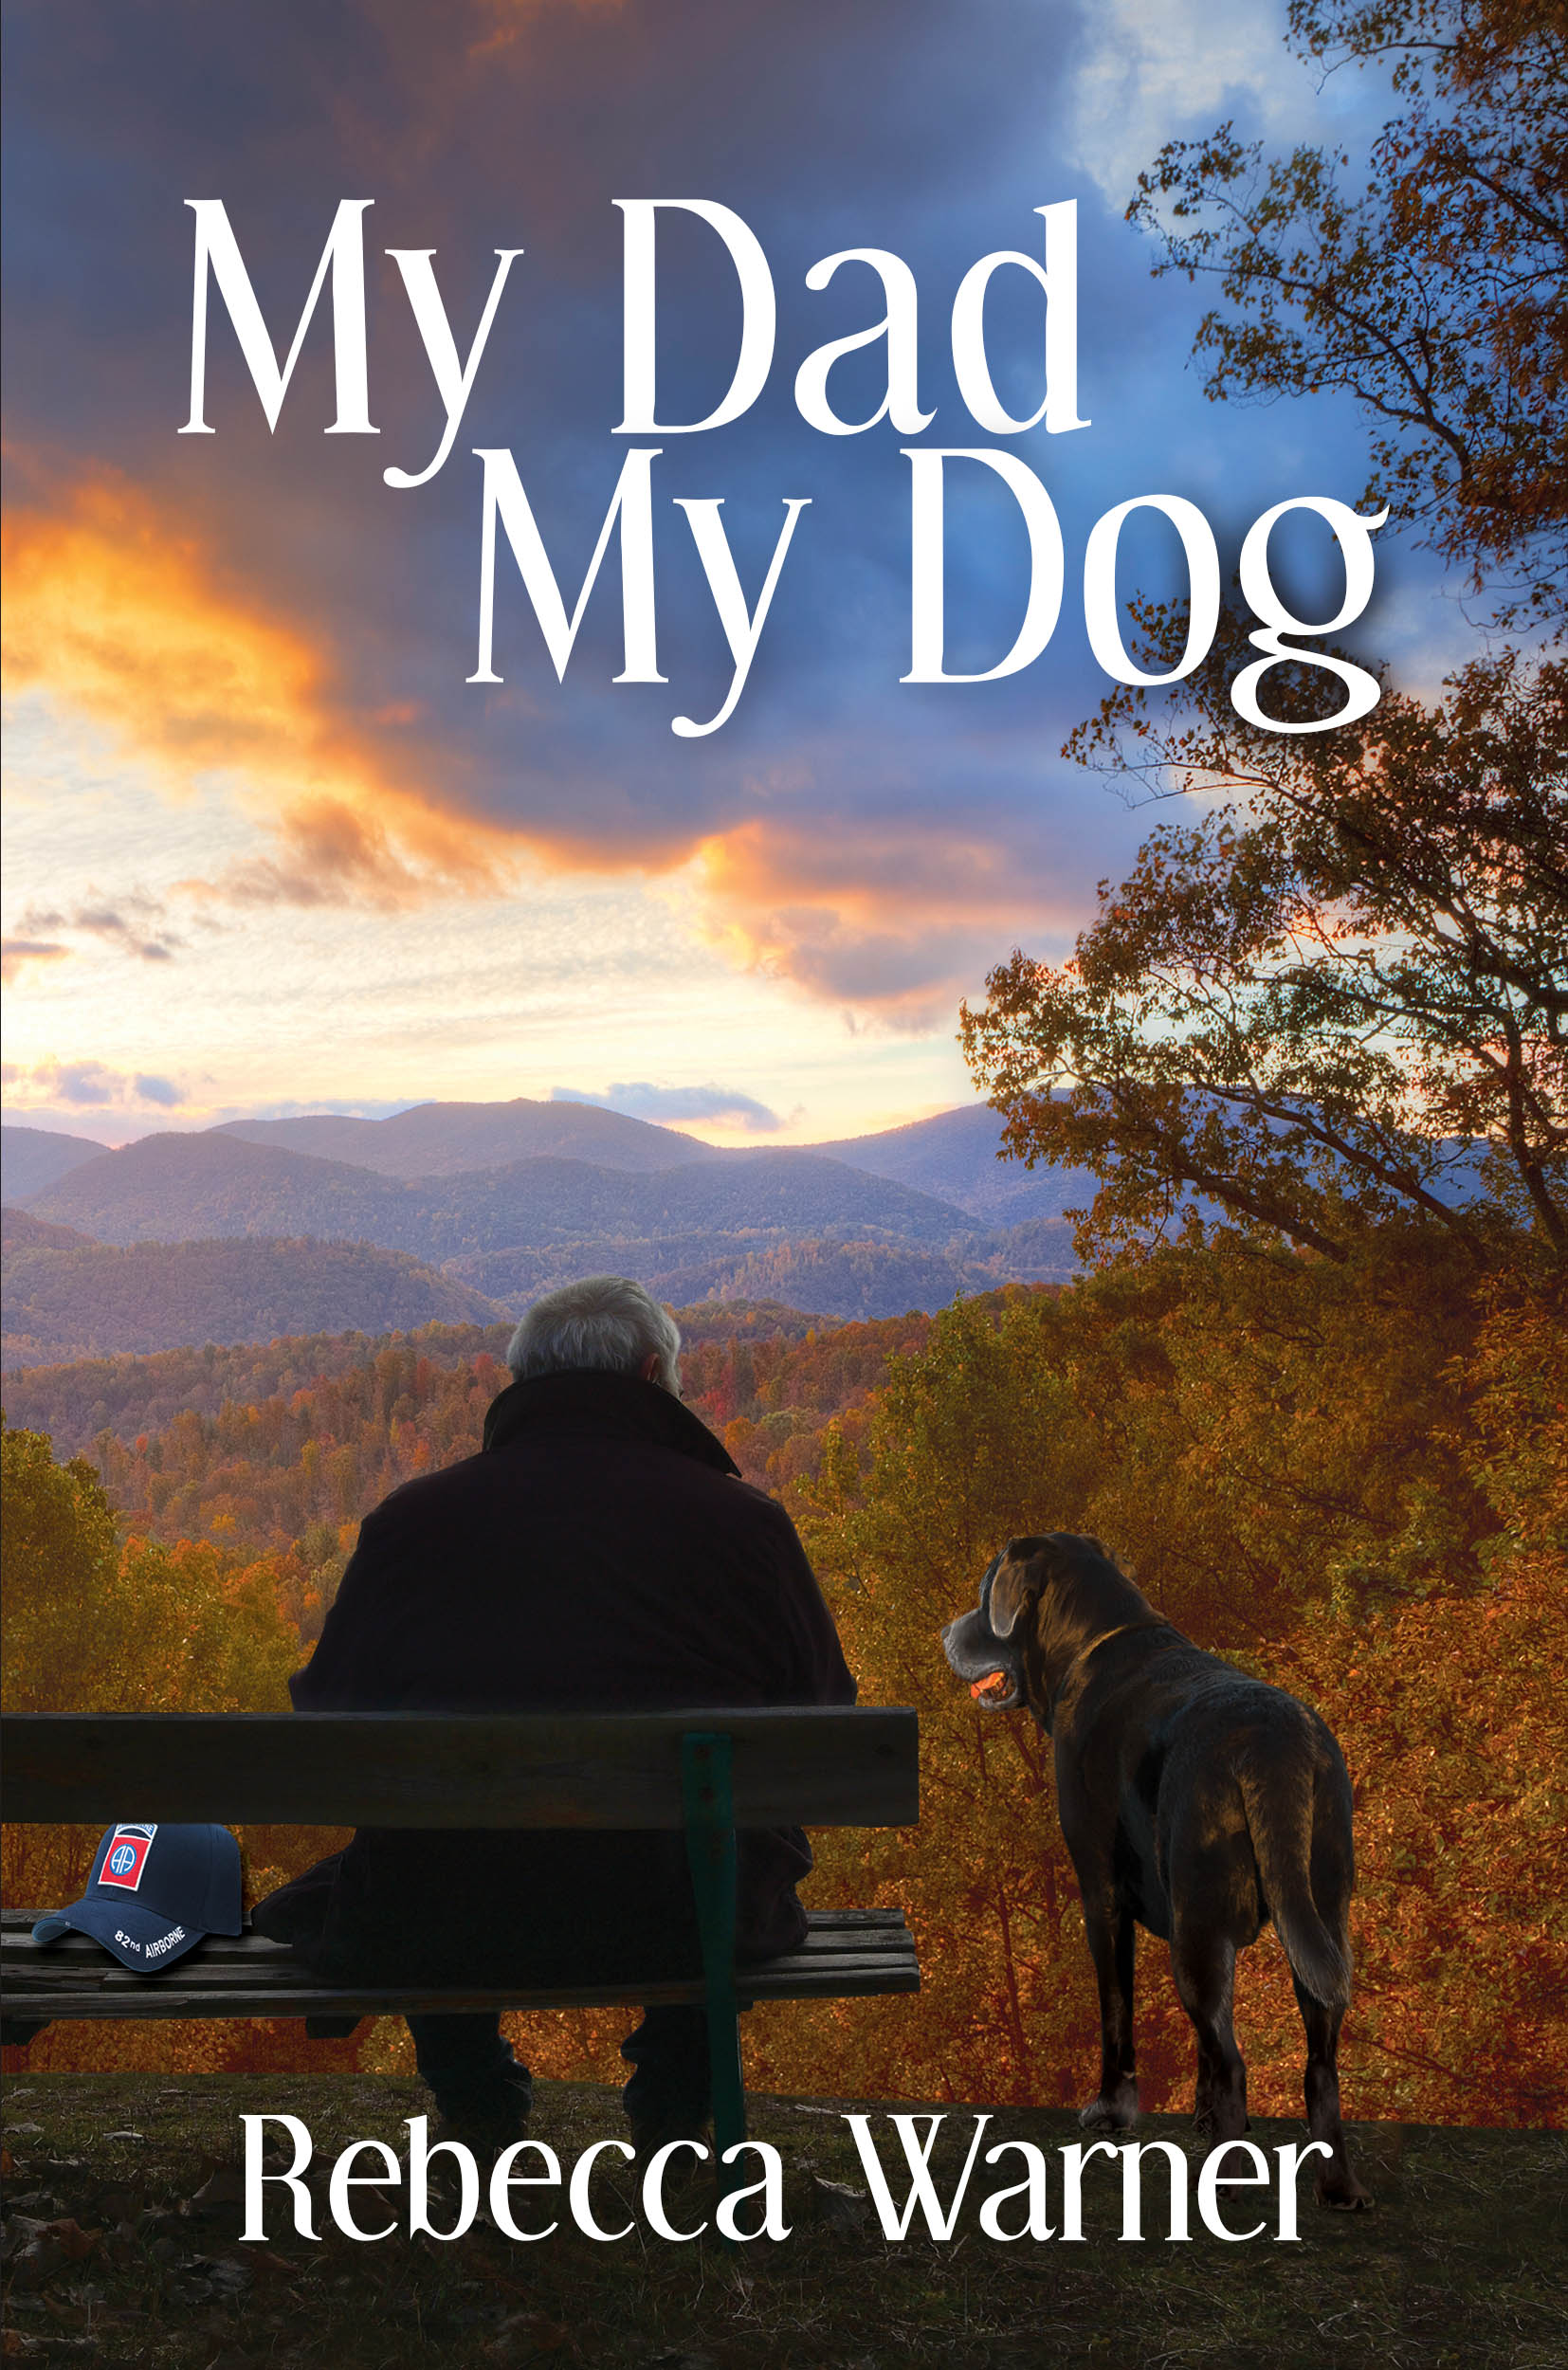 My Dad My Dog by author Rebecca Warner